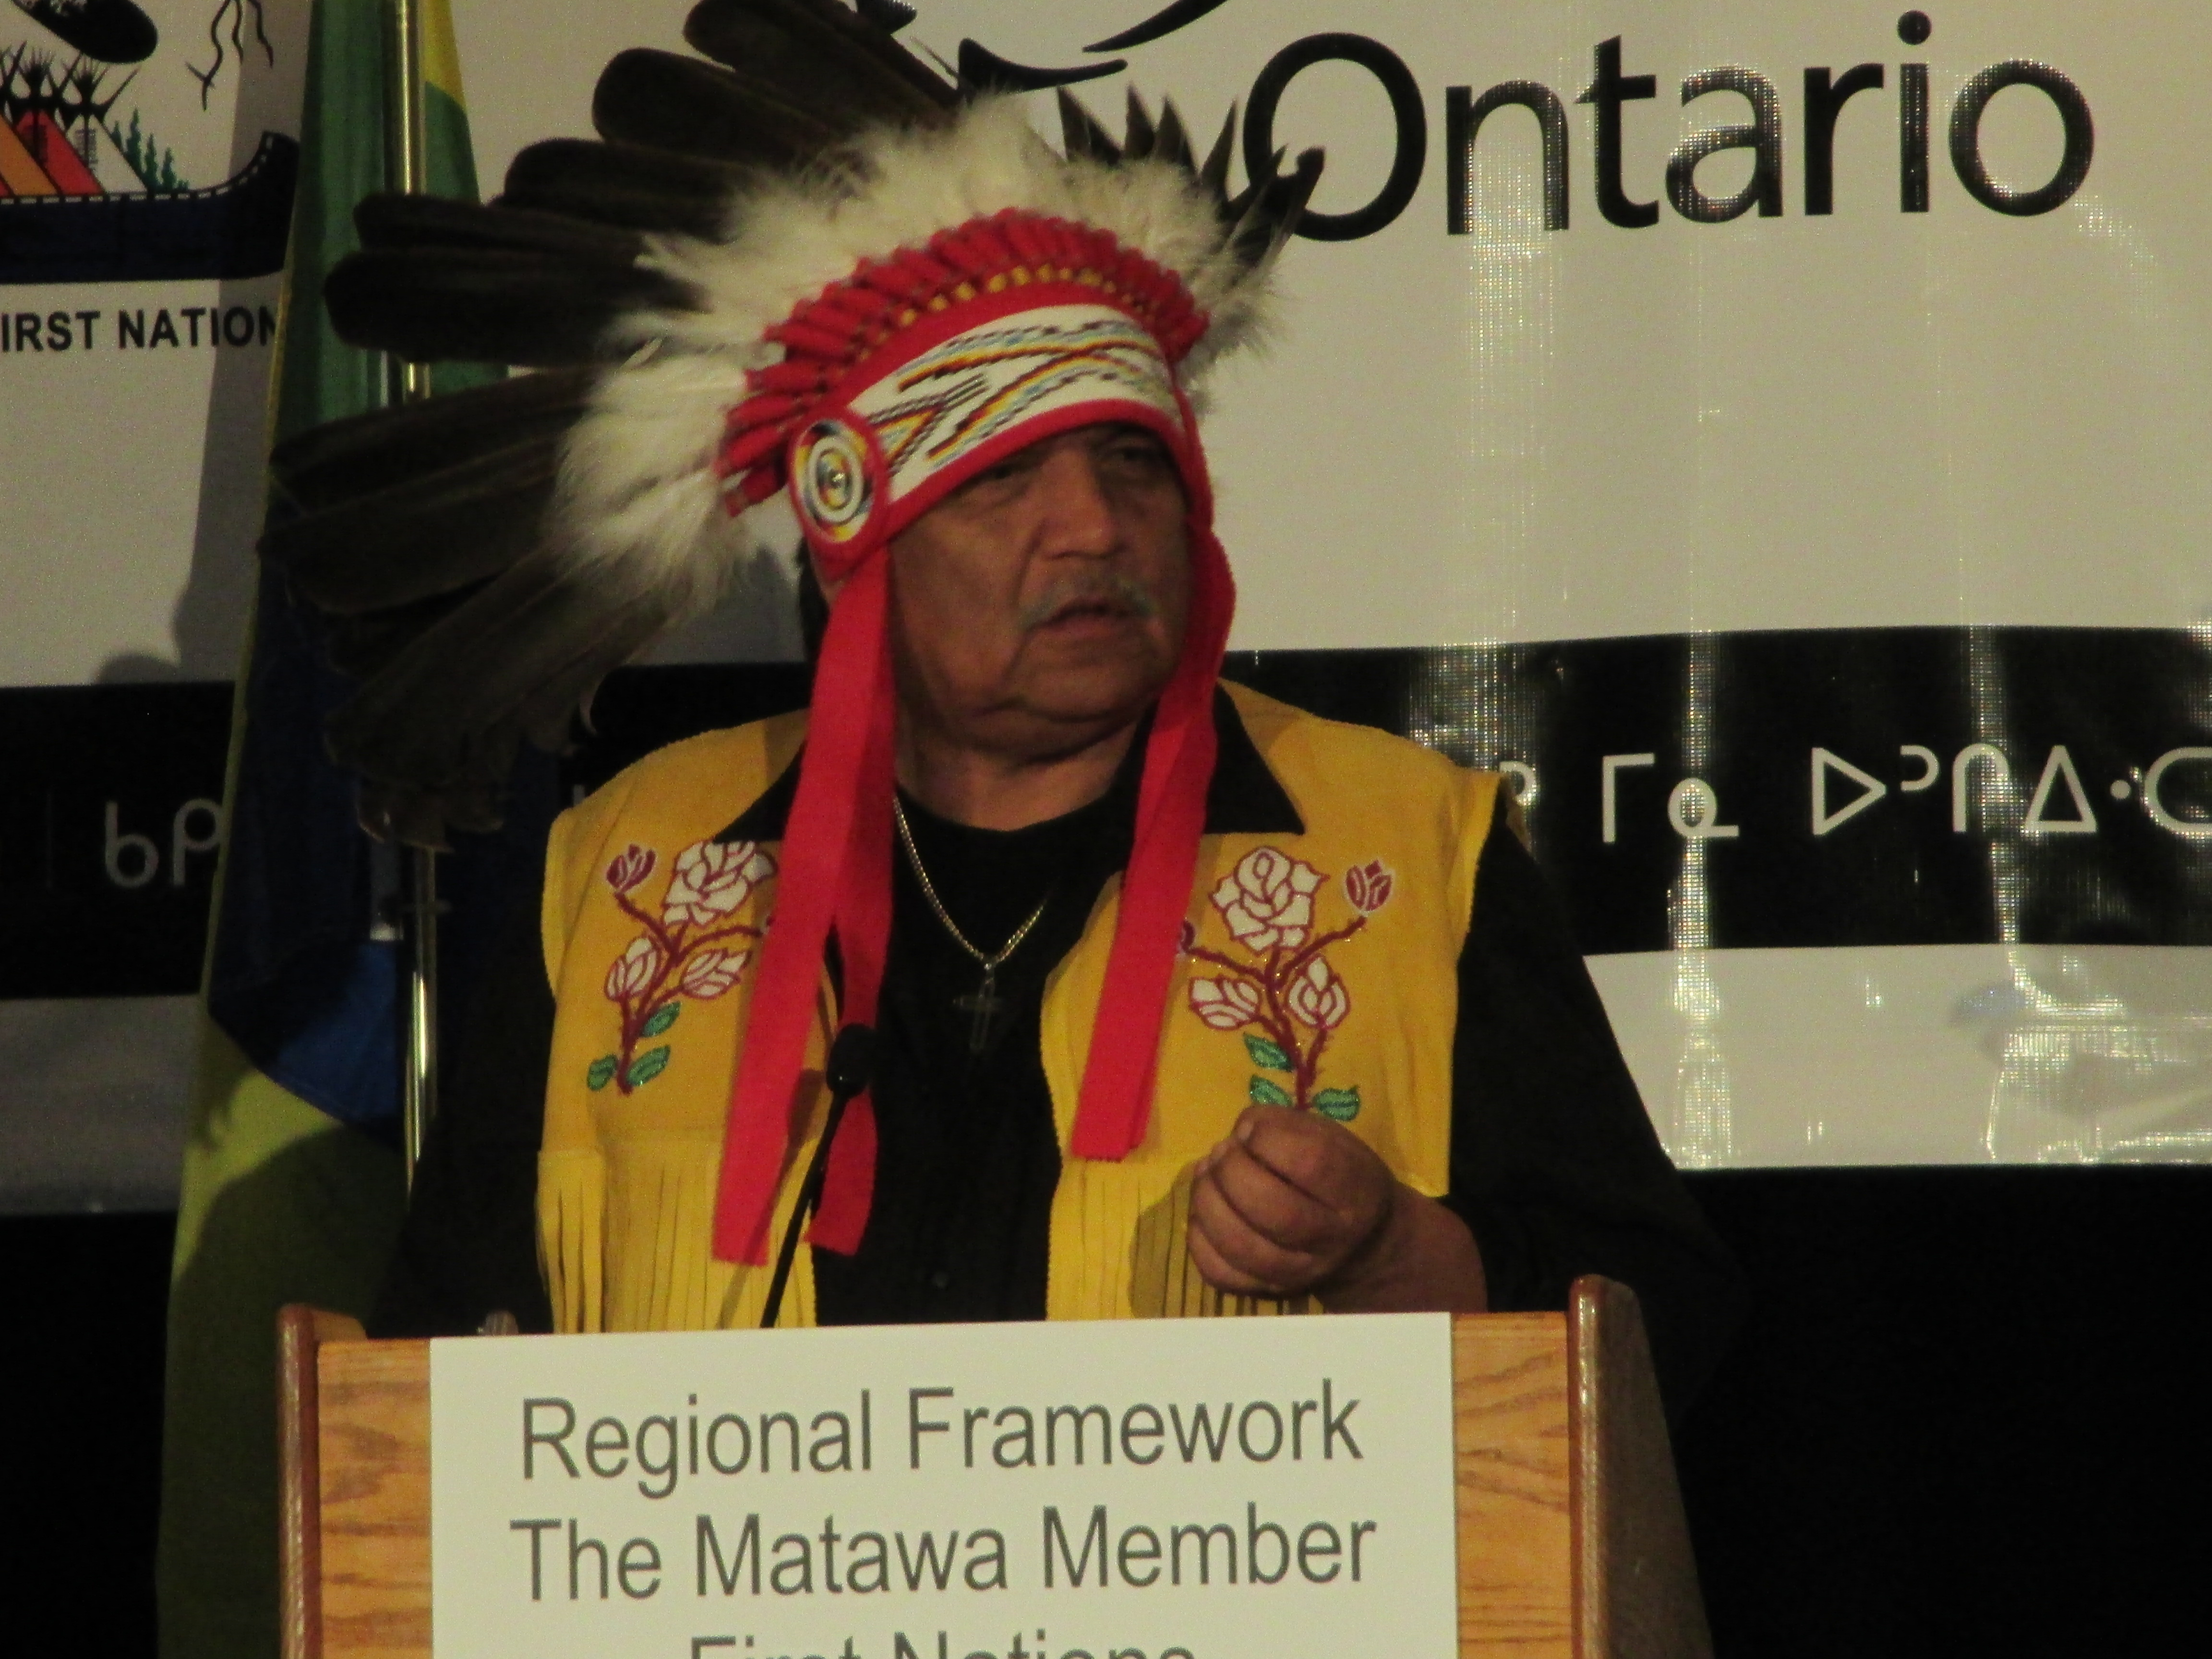 Chief Sonny Gagnon, Aroland First Nation - Speaks at the signing of the historic Regional Framework Agreement signed by Matawa-member First Nations and the Province of Ontario